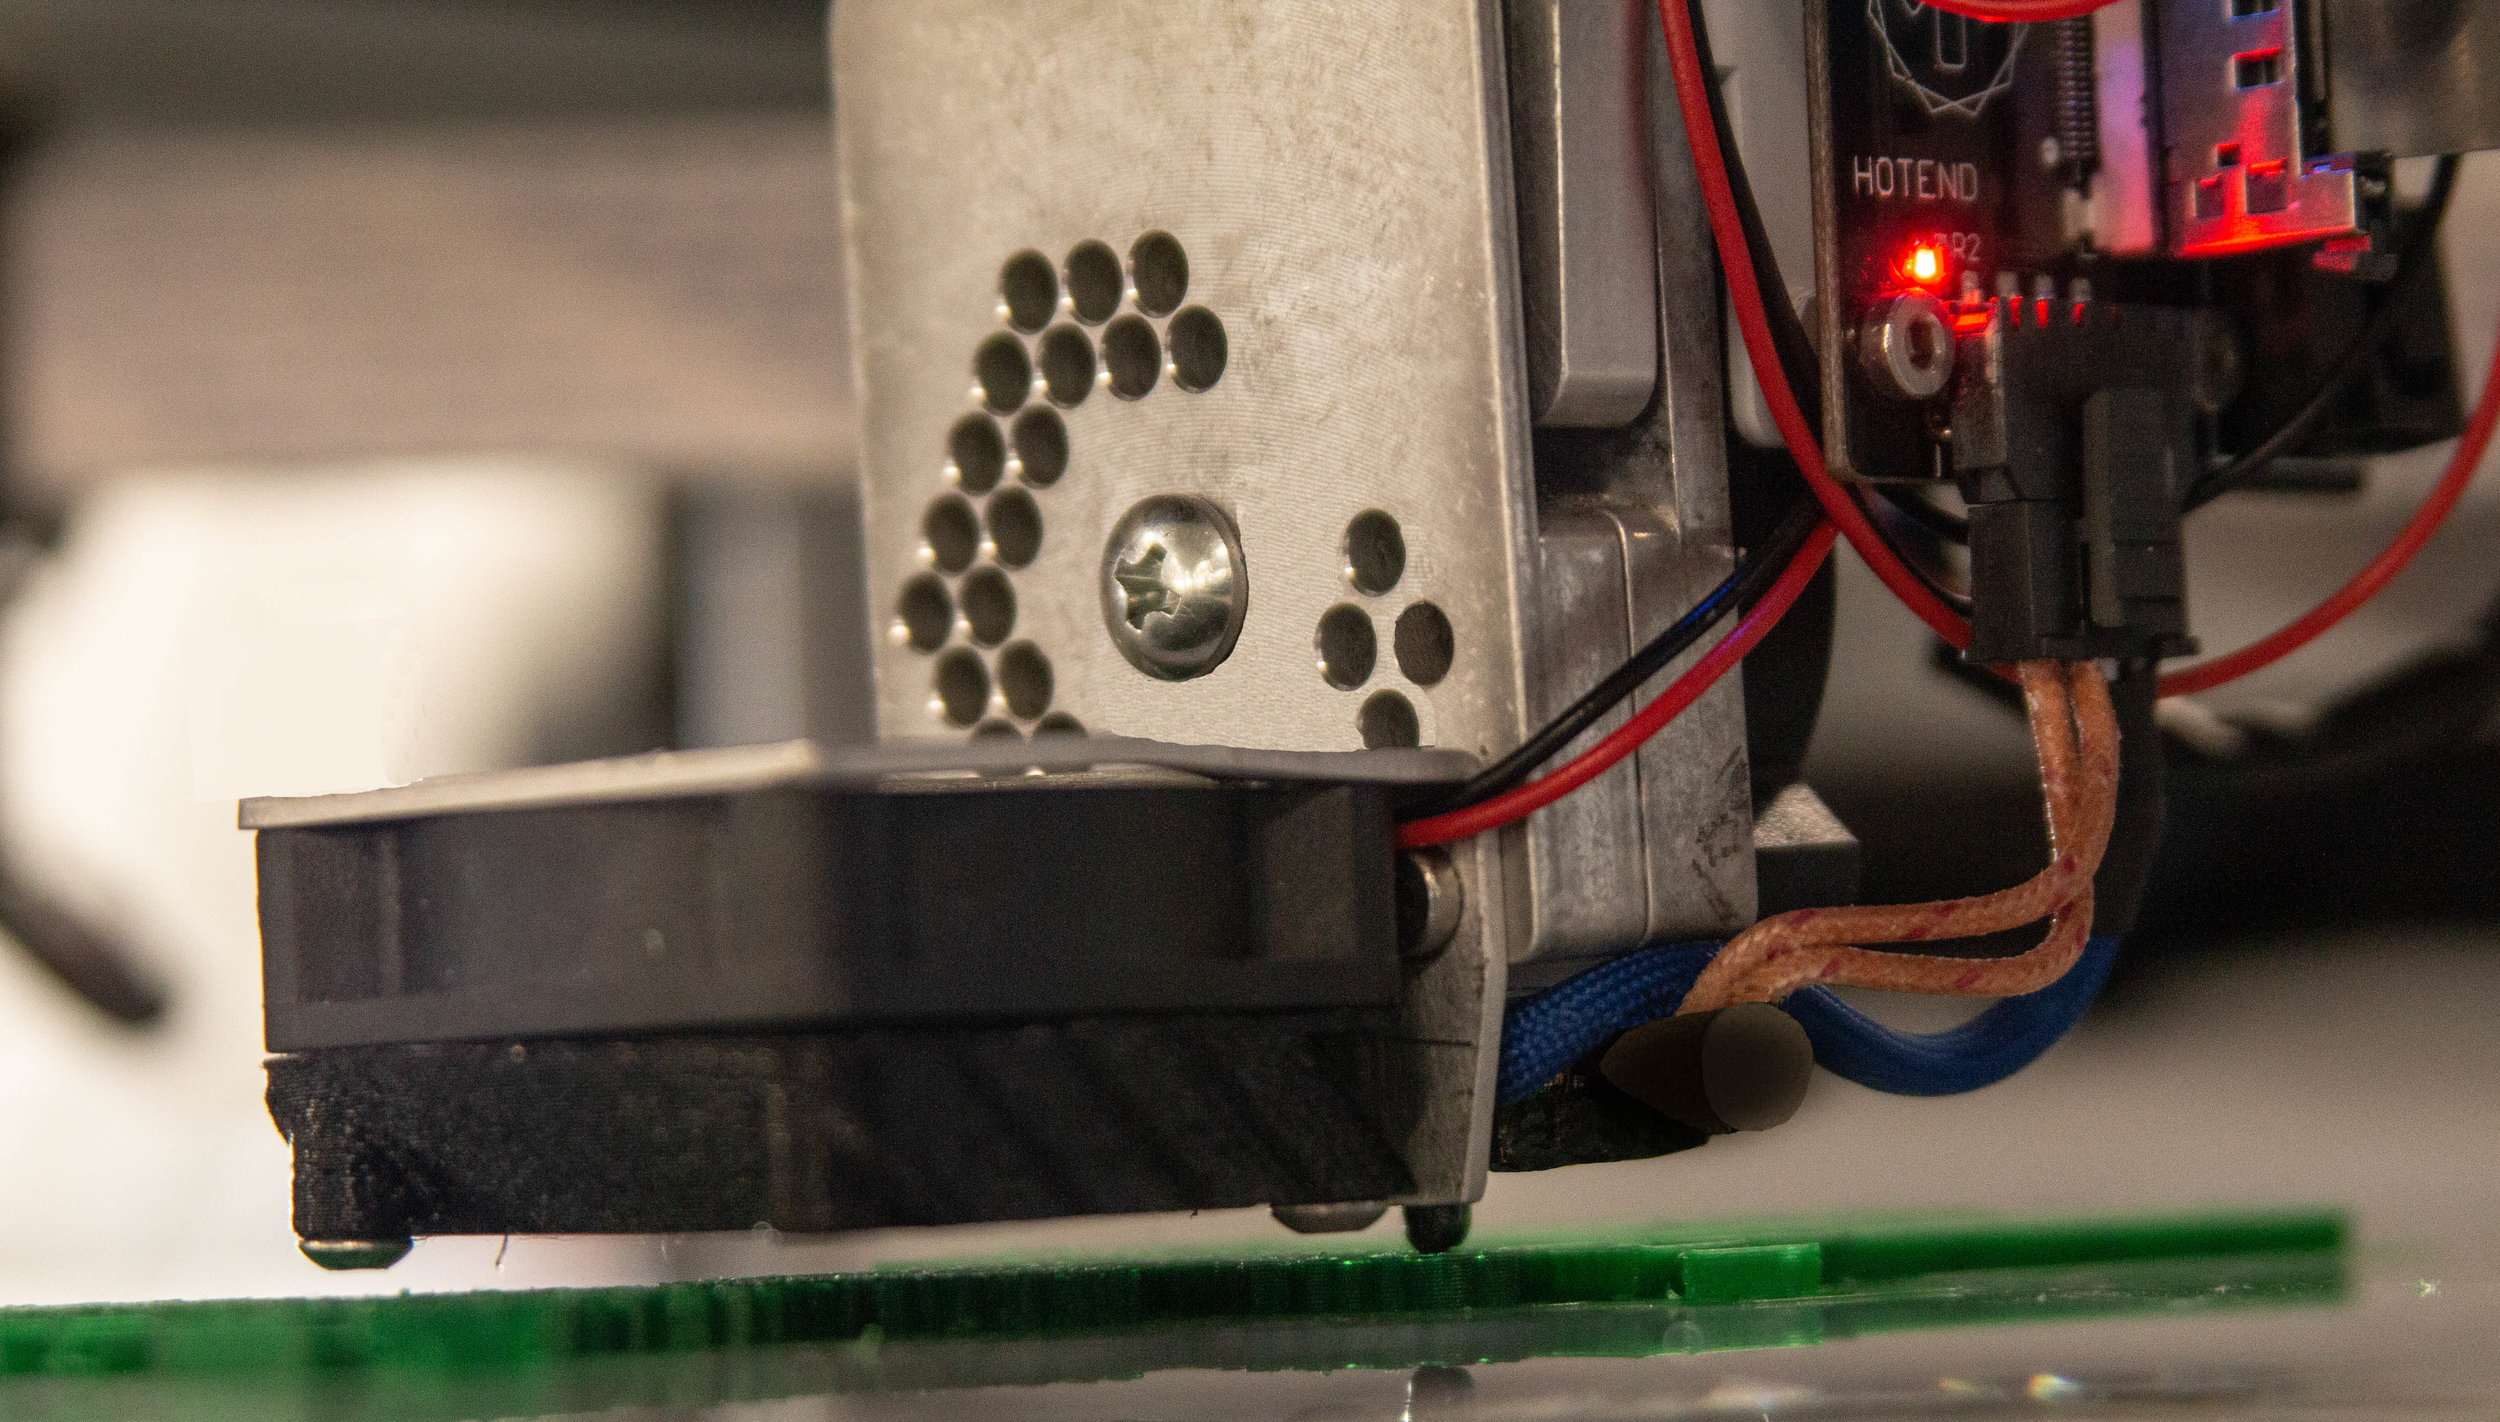 3D-Printer-in-Action1-Green-filament-.jpg